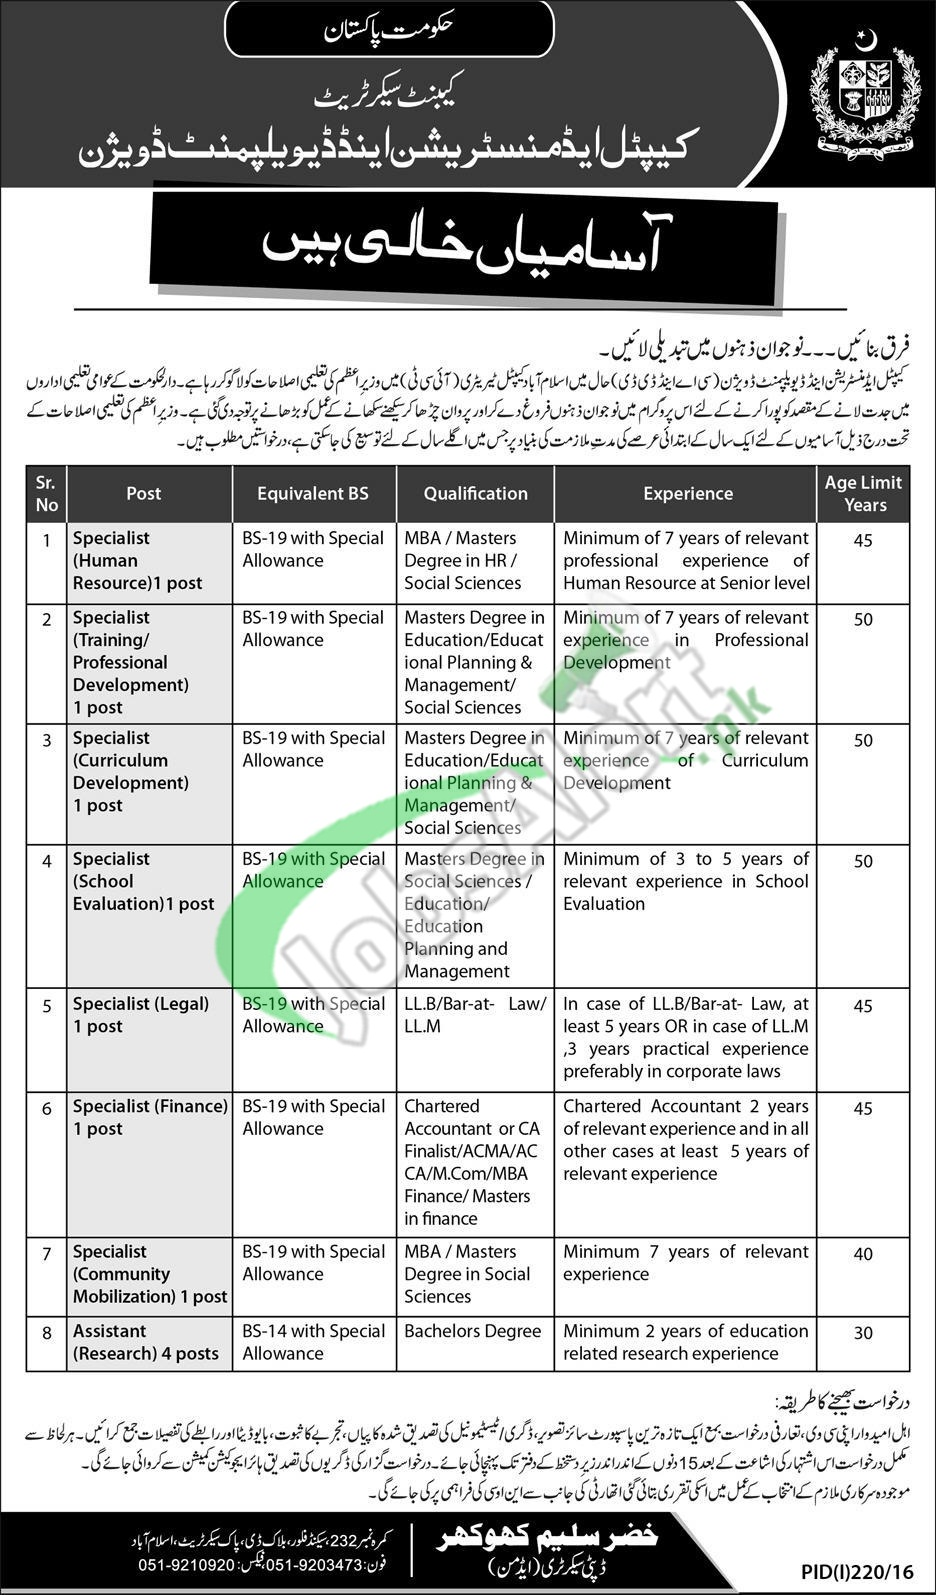 Capital Administration and Development Division Islamabad Jobs